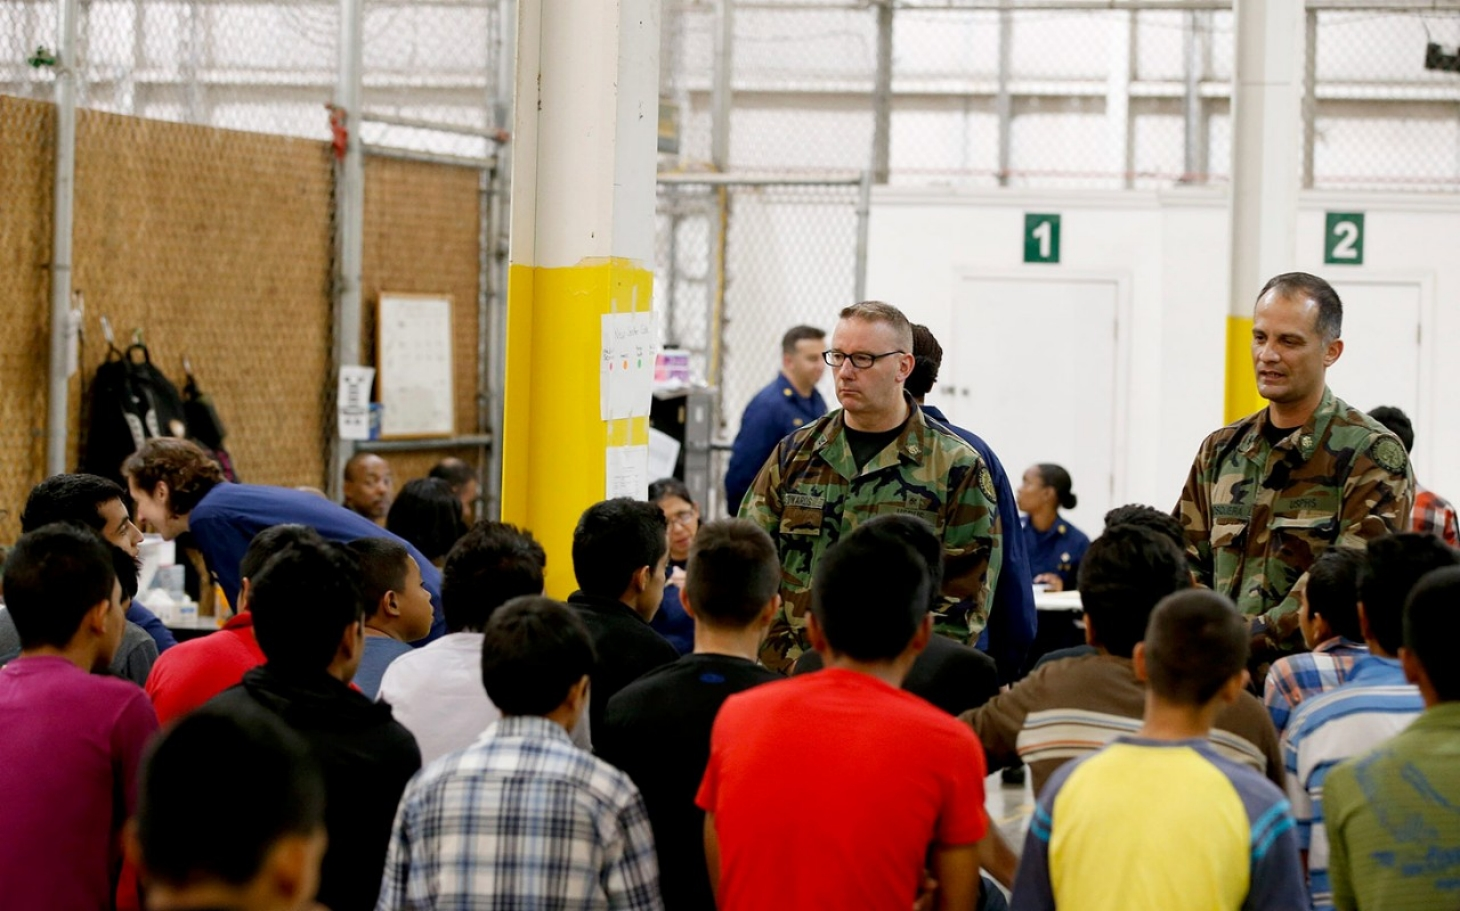 US plans child migrant processing center in Texas warehouse